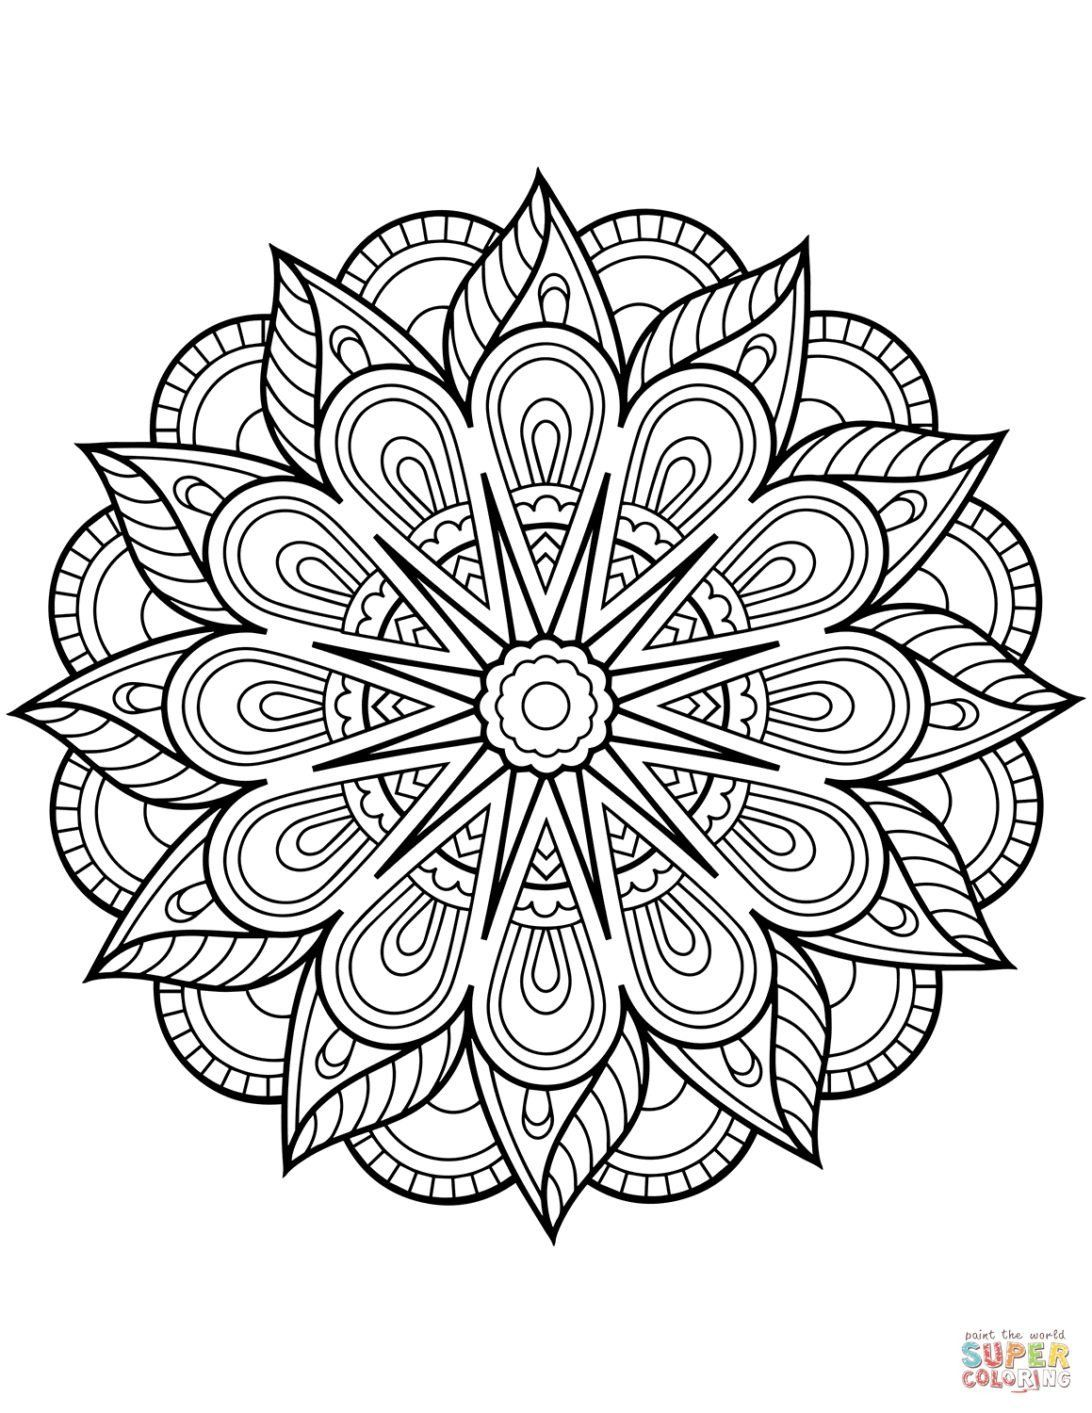 Big Mandala Coloring Pages Top 14 Great The Big Flower Mandalas With Flowers Ve Ation Mandala Coloring Pages Printable Coloring Book Mandala Coloring